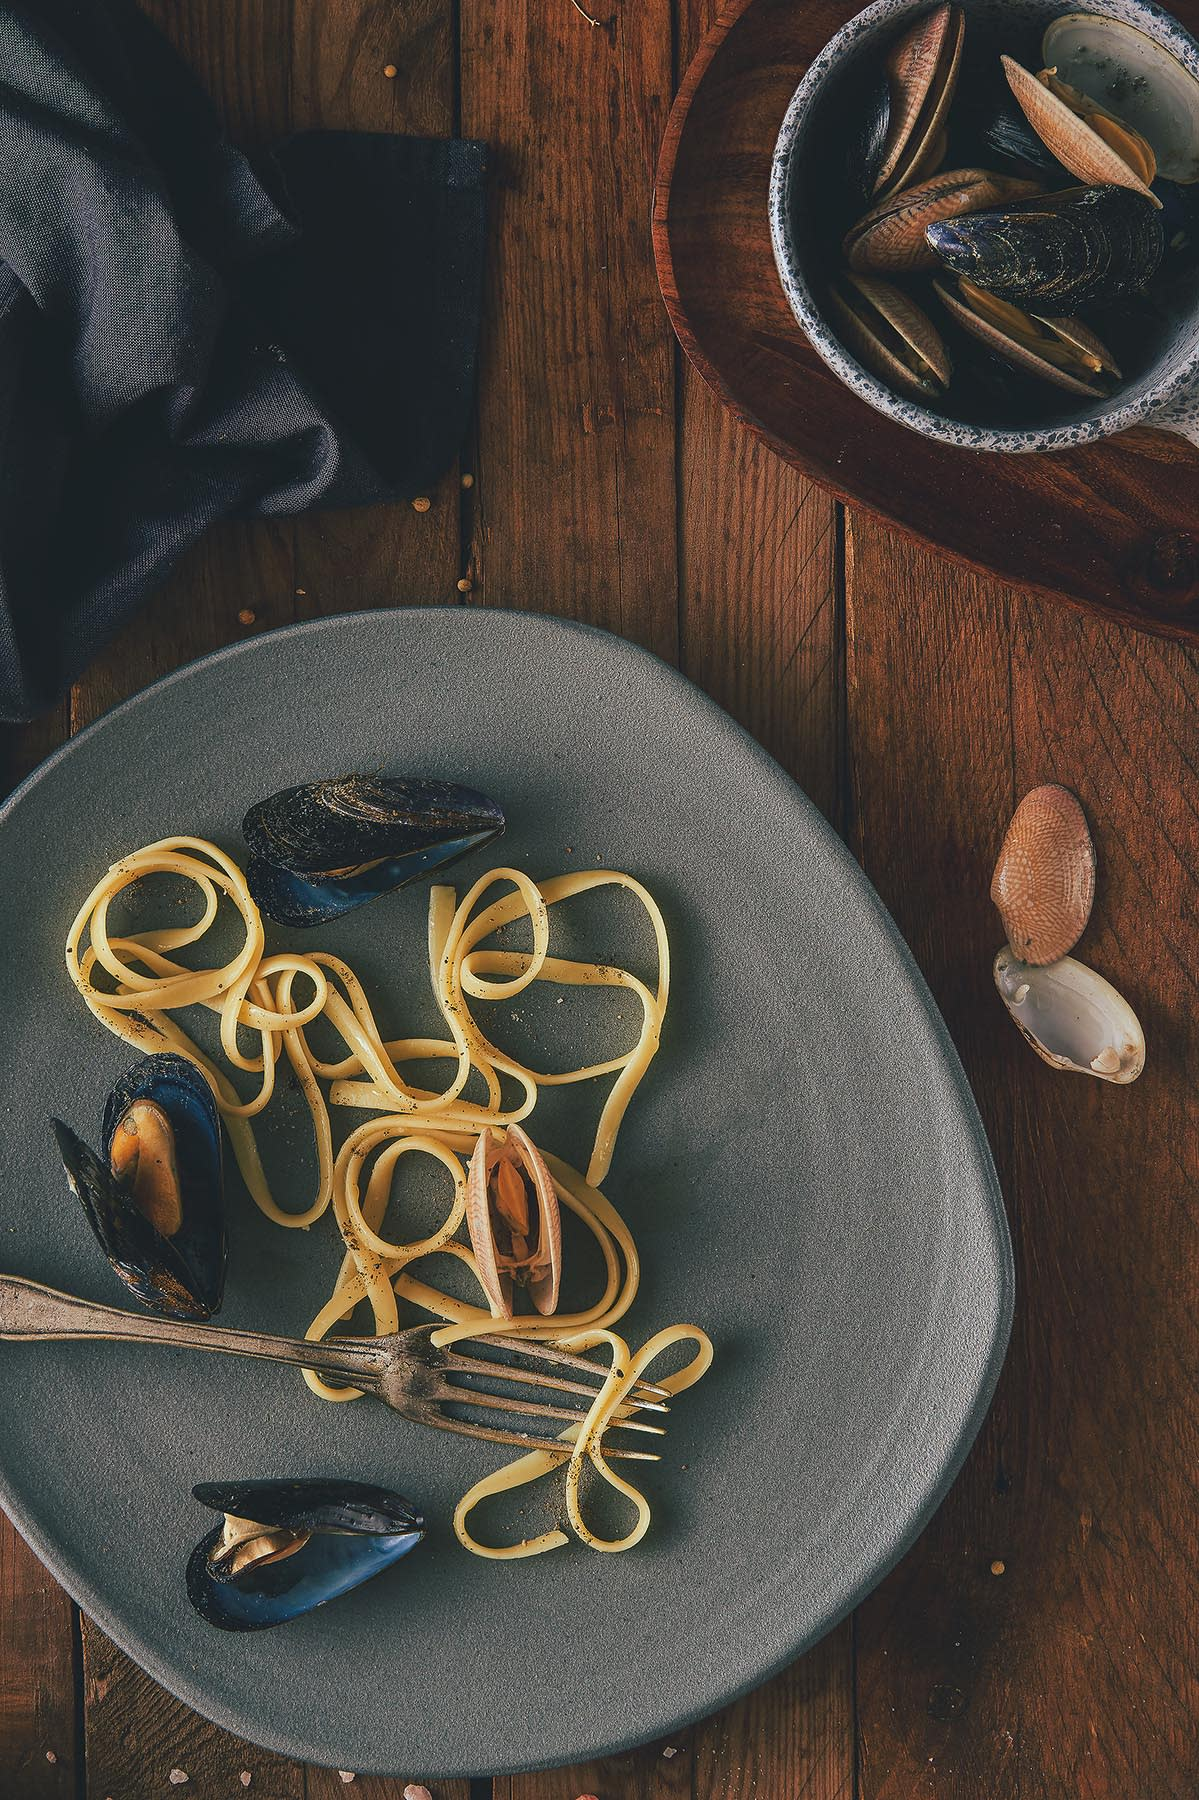 Pasta & Mussels - Food photography - Mohamed Abdel-Hady Photography